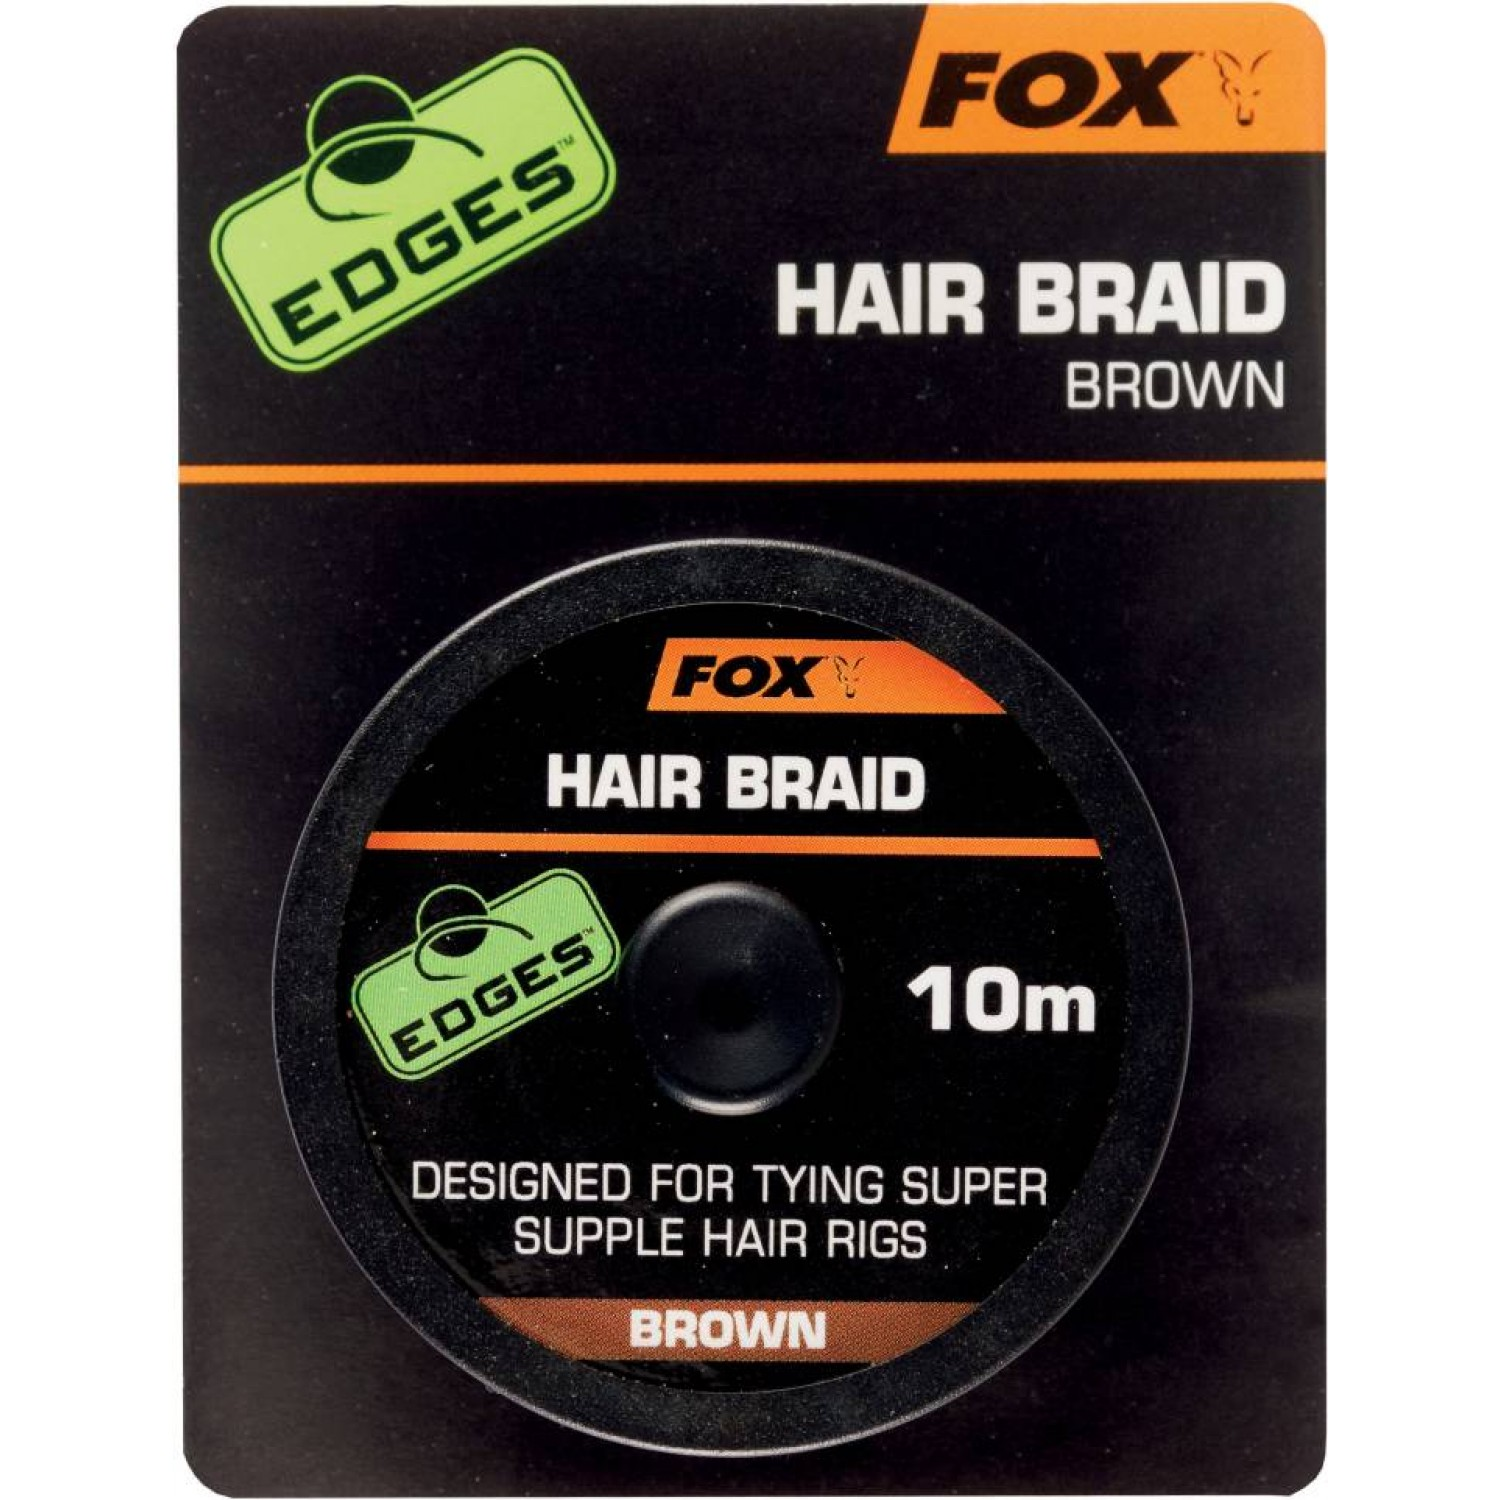 Fox Edges Hair Braid Brown, 10m